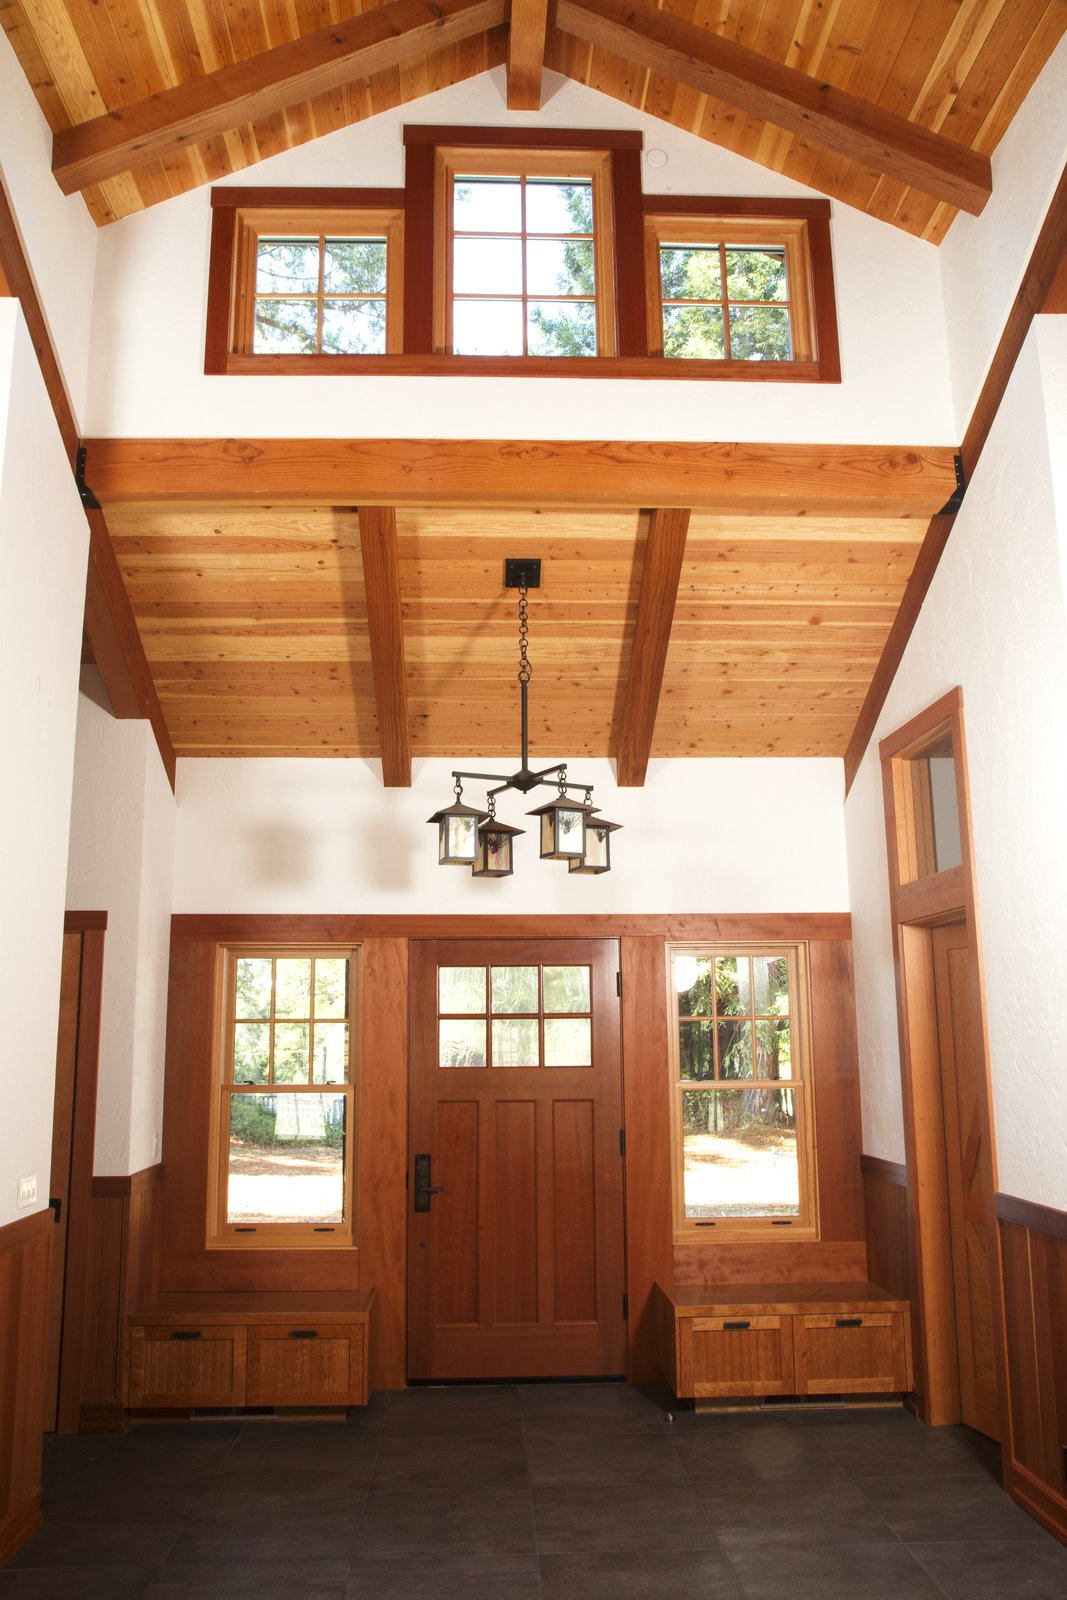 A home in Sonoma County, California uses redwood for the interior beams, trim, and entryway storage to evoke a pastoral warmth.  Photo 6 of 7 in Beauty and Brains: Building Sustainably With Redwood